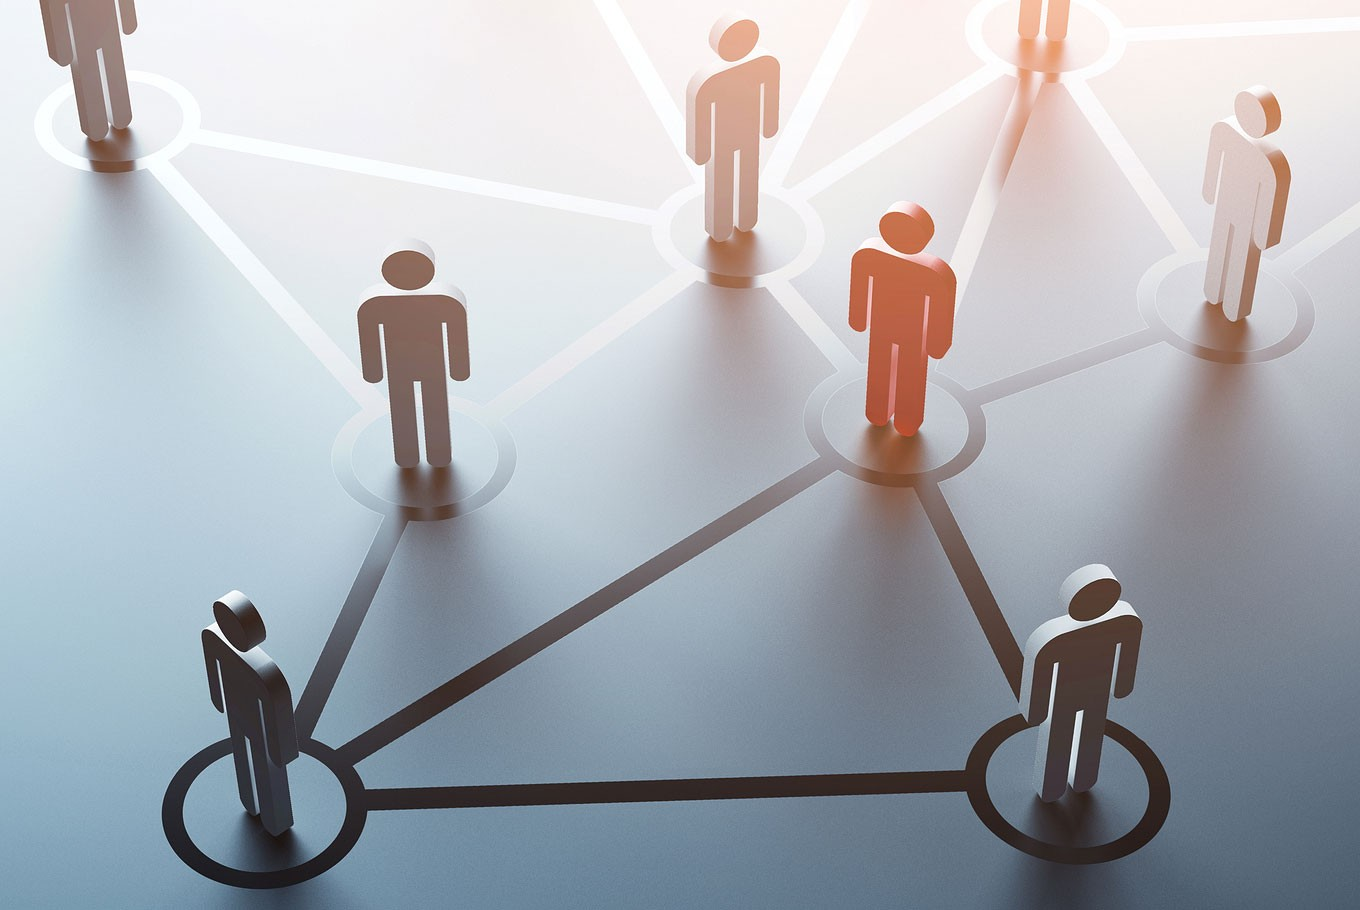 Advance your career by networking